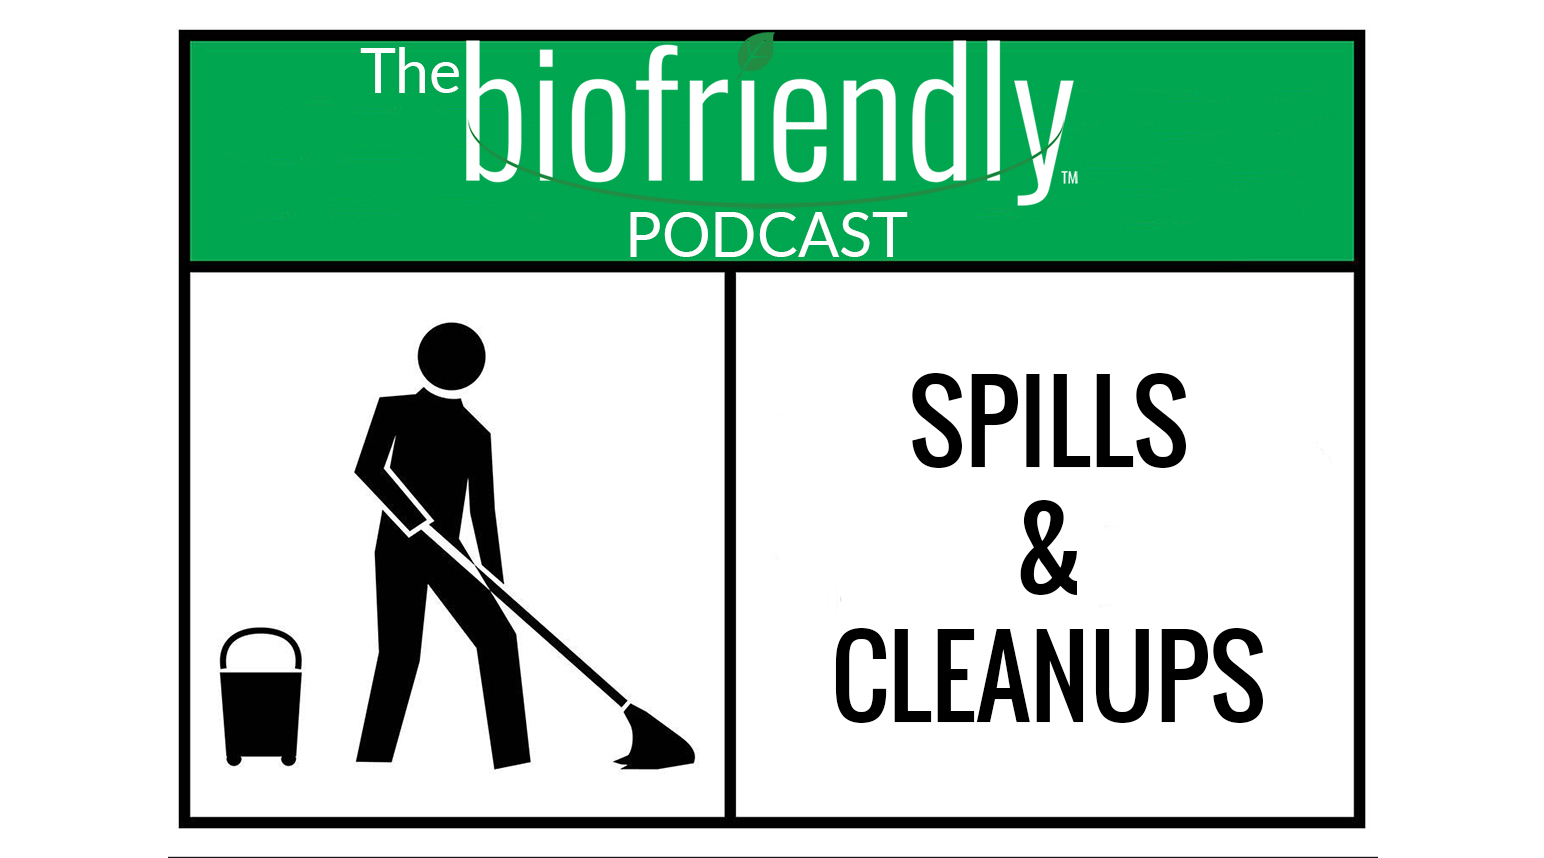 The Biofriendly Podcast - Episode 4 - Spills and Cleanups